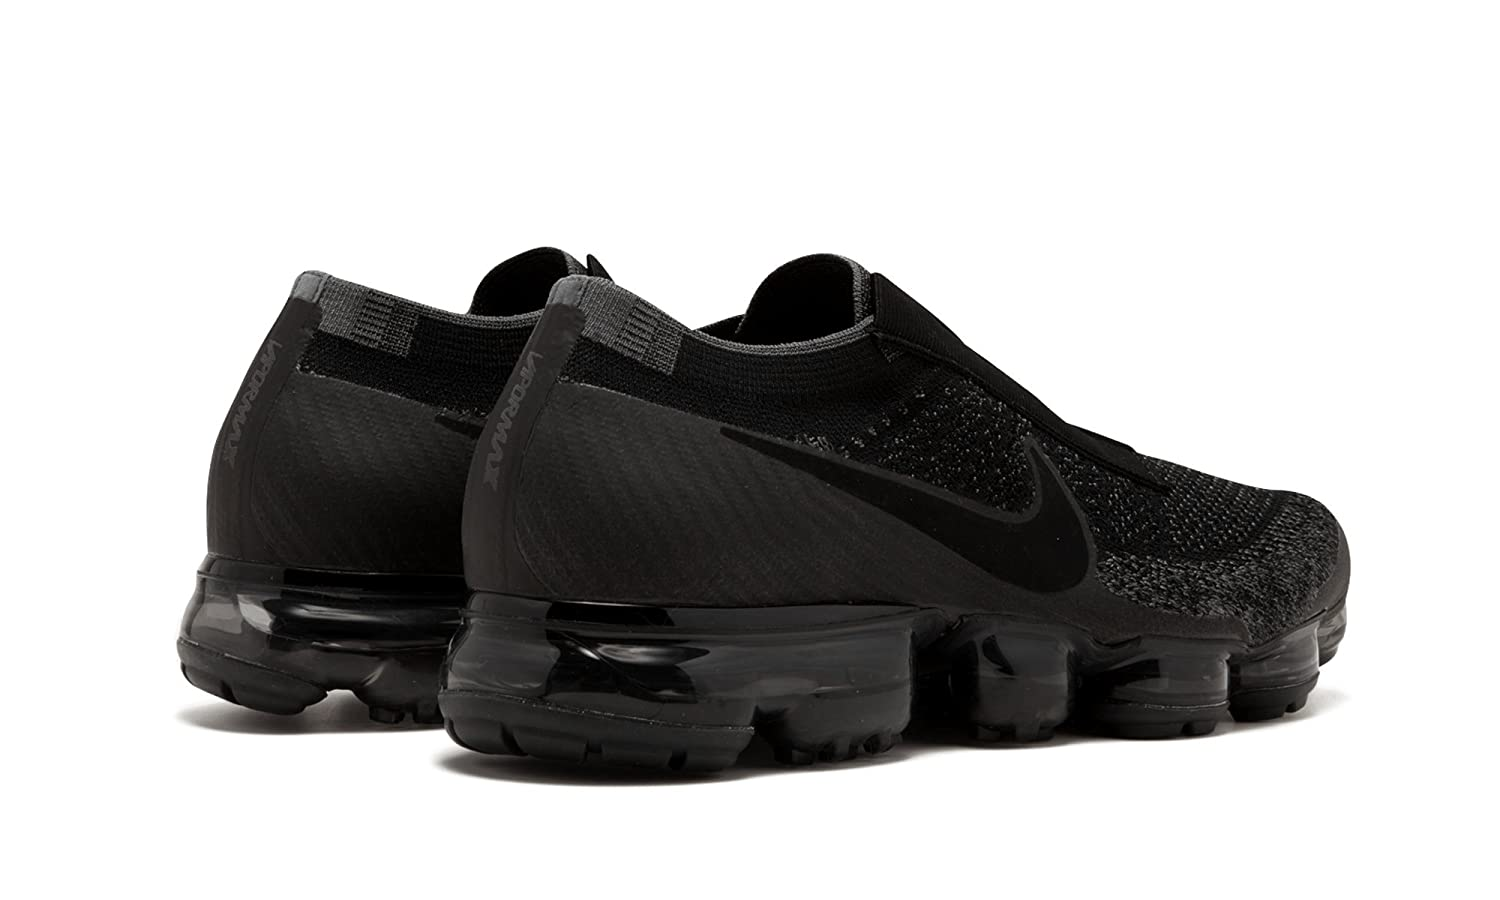 7ac0a06e517 Nike Air Vapormax Flyknit SE Laceless - Black Black-Dark Grey Trainer Size  8 UK  Amazon.co.uk  Shoes   Bags